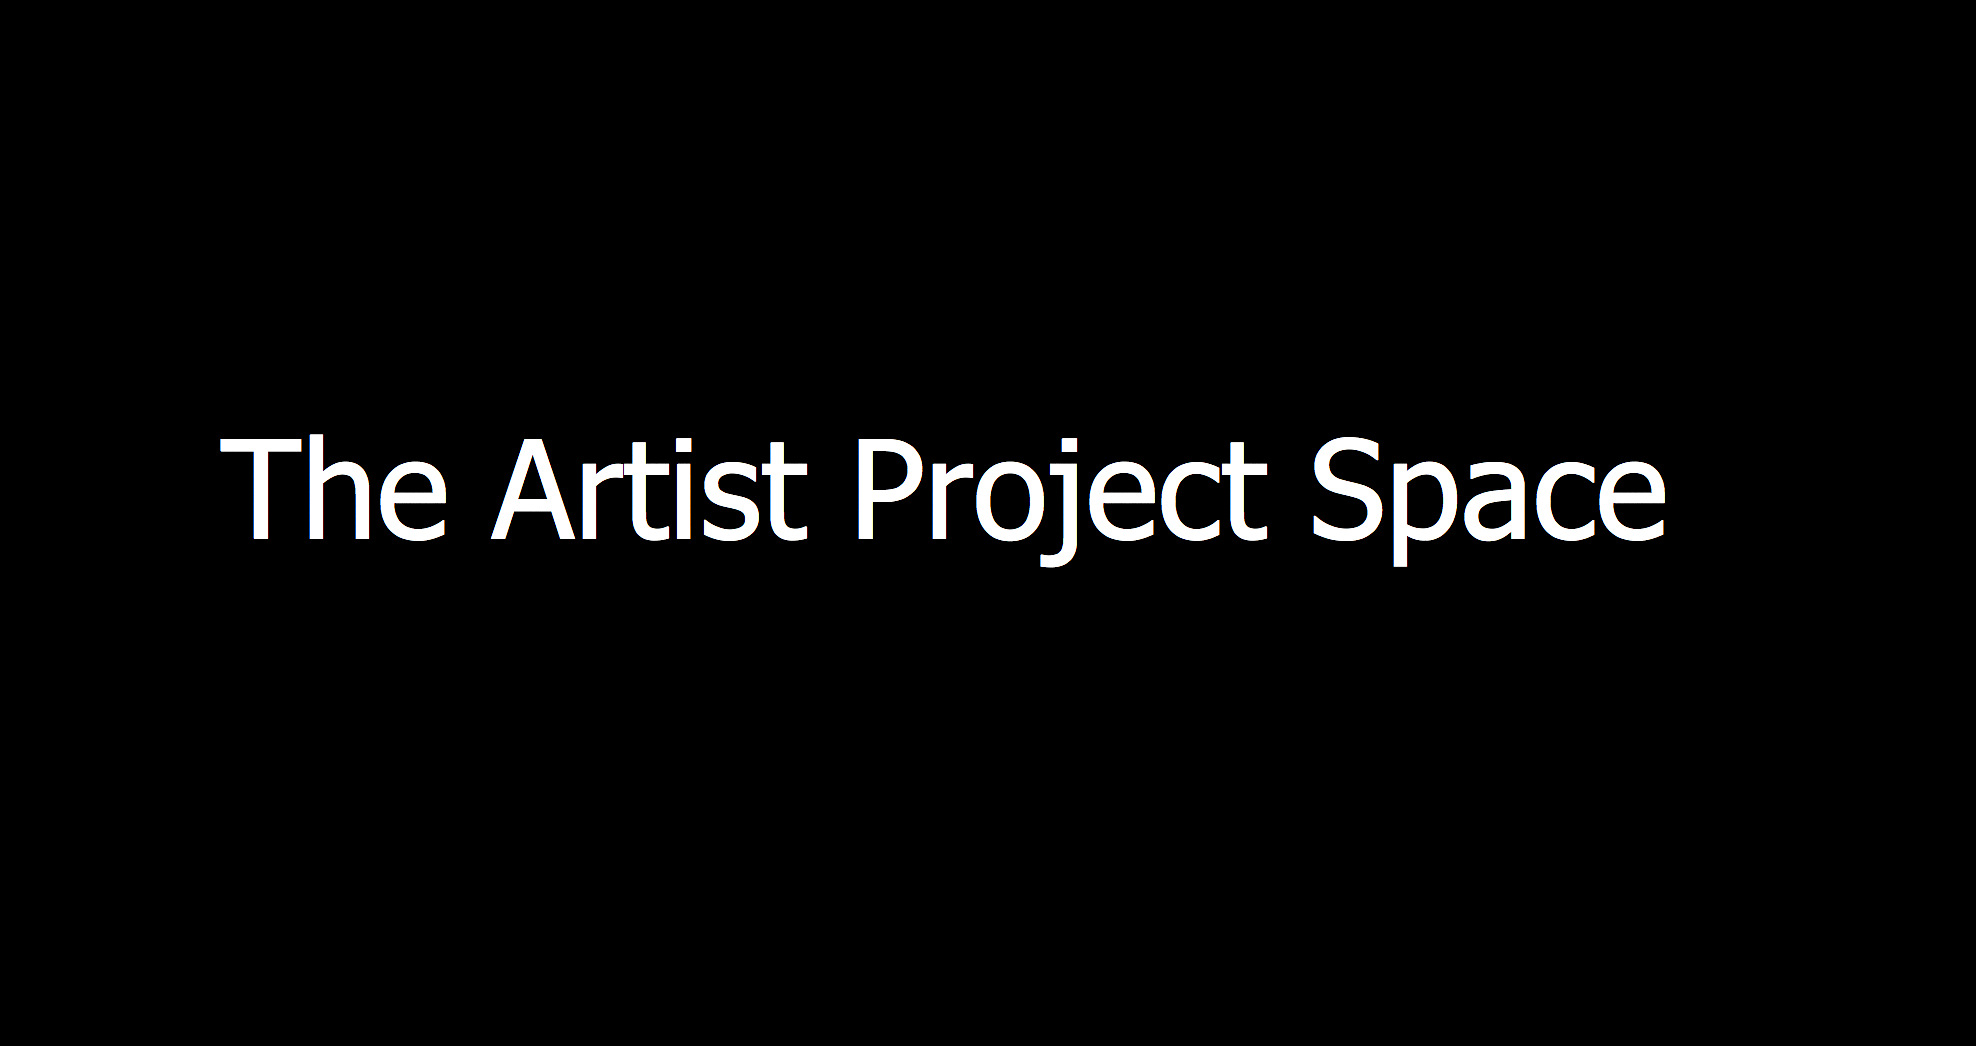 How To Join us - Anyone with an interest in developing their art practice through peer-support and critical dialogue can join. TAPS is a platform for the development of a diverse fine art practices.The associate membership fee is £6.50 per month. Core members fee is £10 per month. This must be paid on the 1st of each month by a Standing Order or Direct Debit.In order to qualify as a core-member:70% attendance rate is acceptable. 80-90% is desirable.Each artist must bring a work in progress to two session during a term. This could be the evolution of the same work/idea or two different works.Term durations:Nov 2018 - February 2019March - June 2019July-August - breakSept - October 2019November 2019 - February 2020Sessions usually held regularly o Thursdays 10 : 30 am - 1 pm - every two/three weeks.